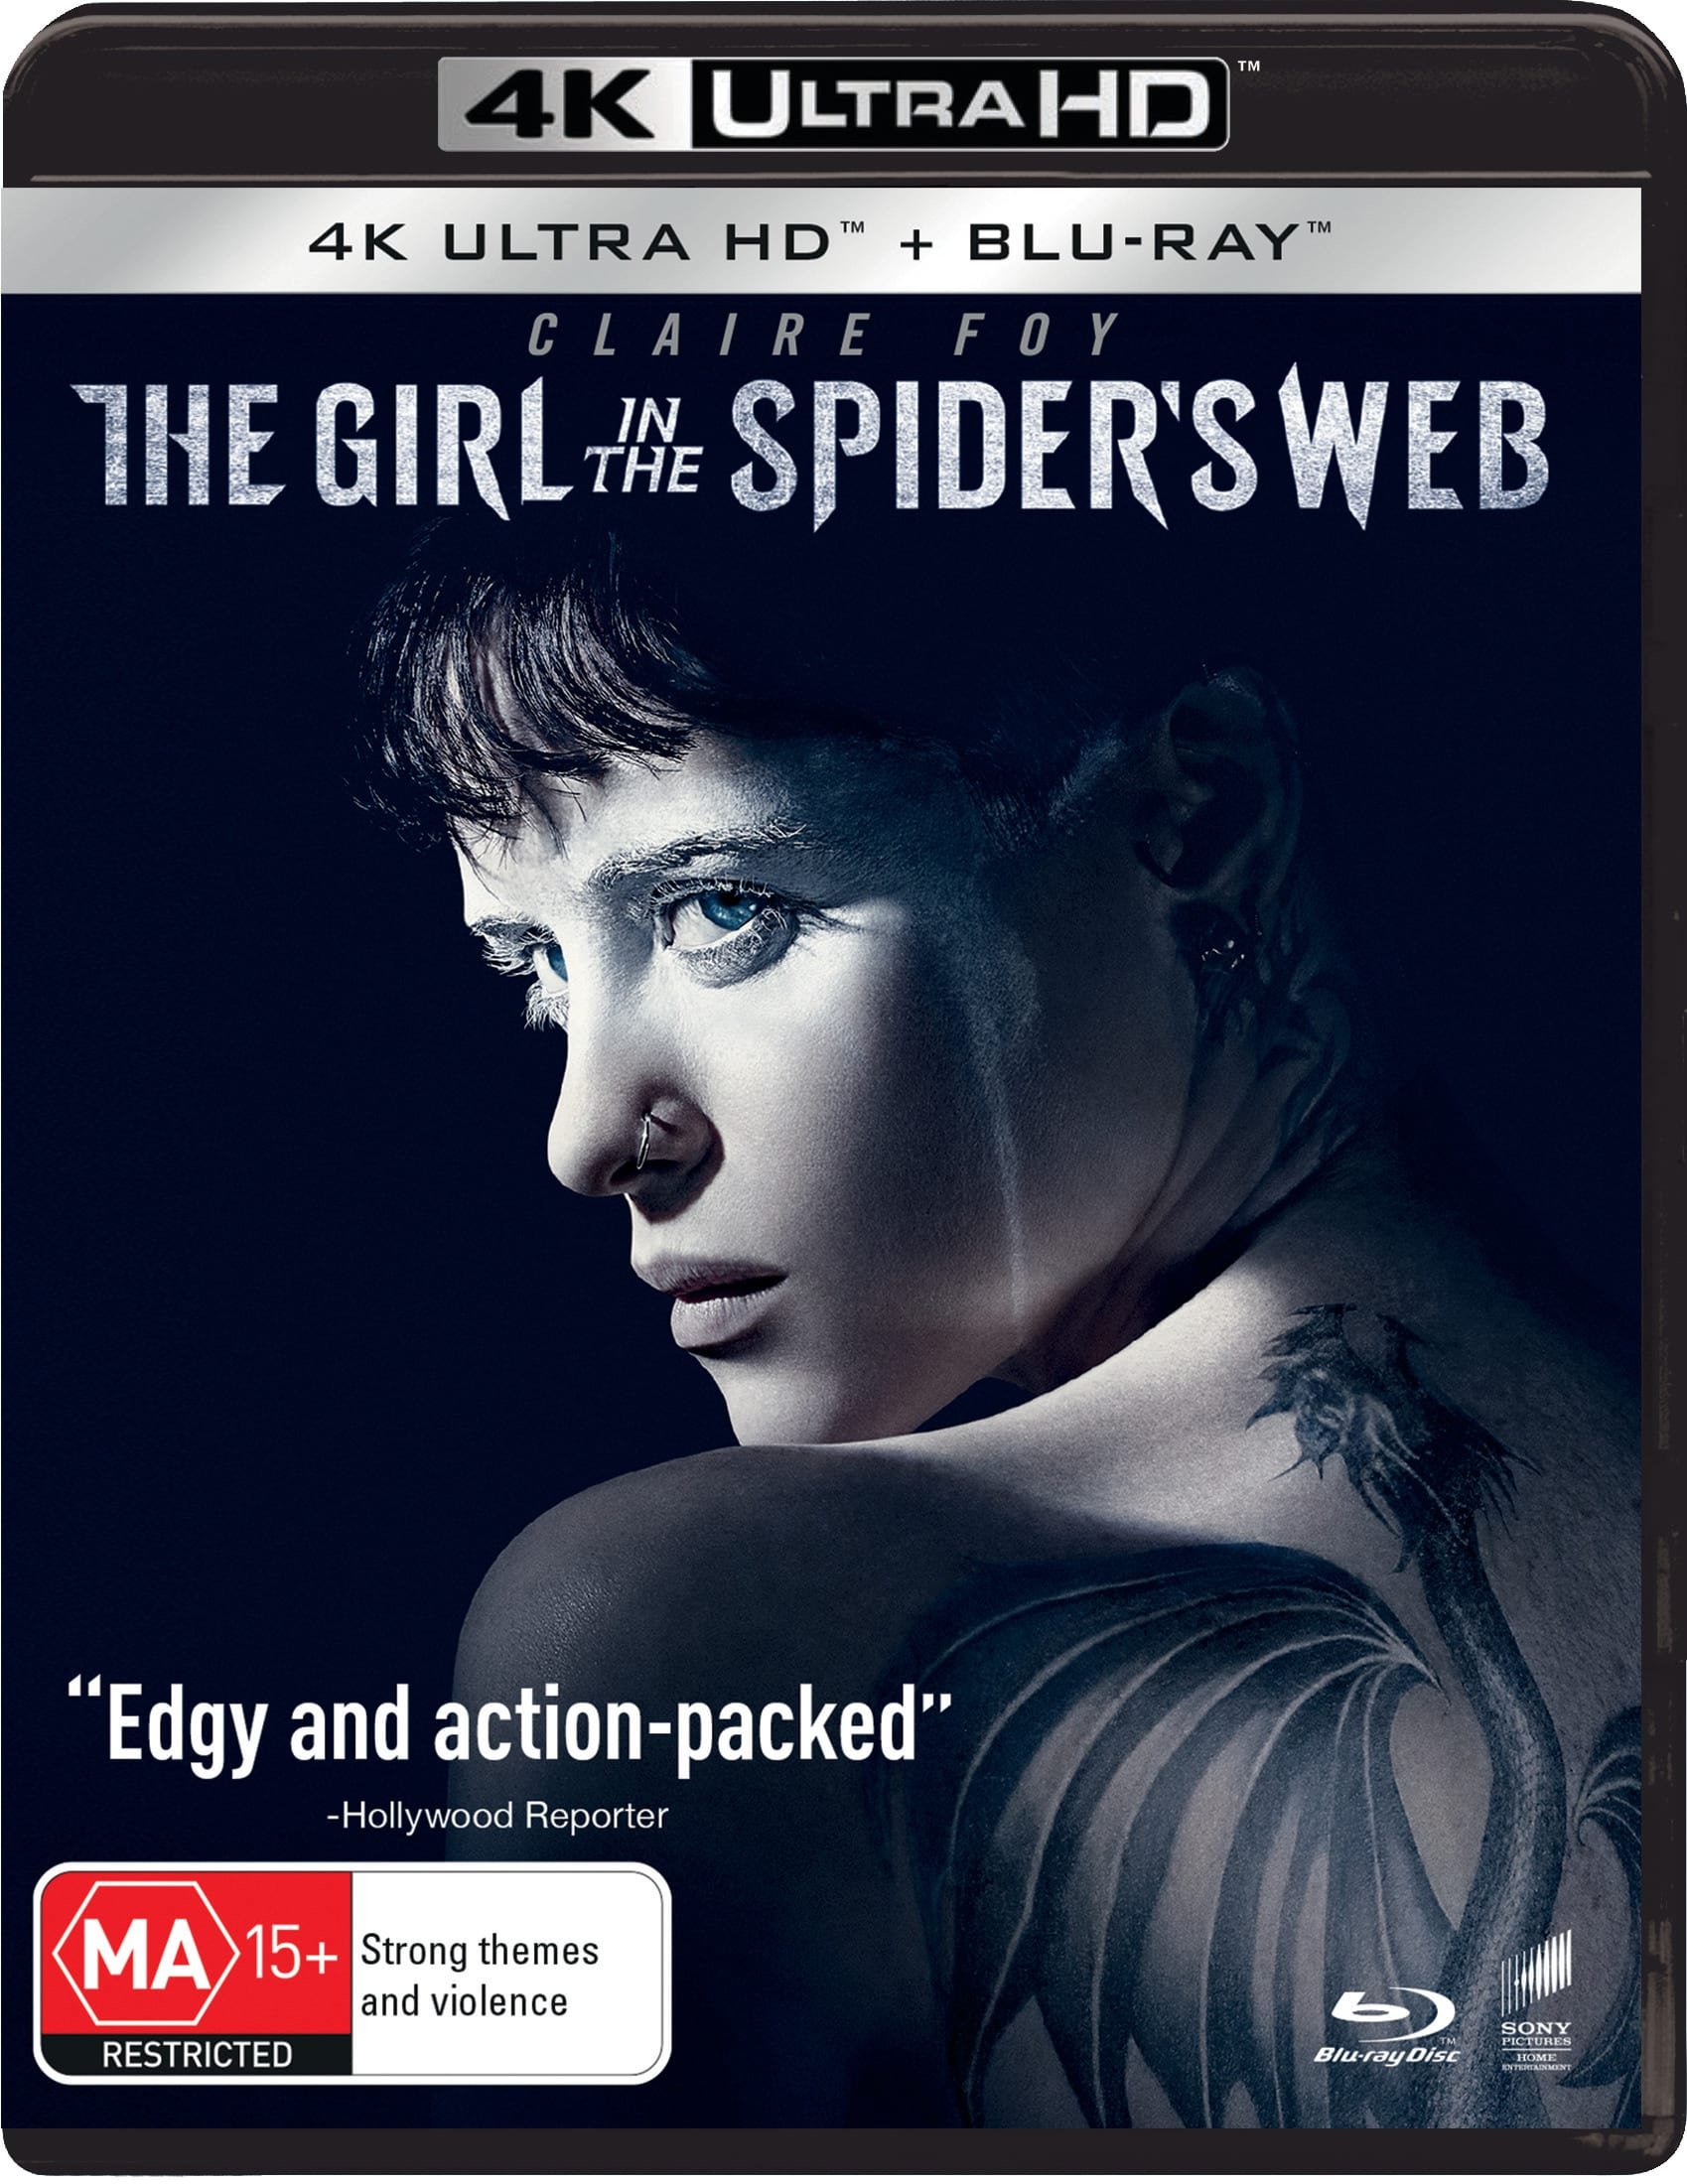 The Girl in the Spider's Web (4K Ultra HD + Blu-ray) [UHD]